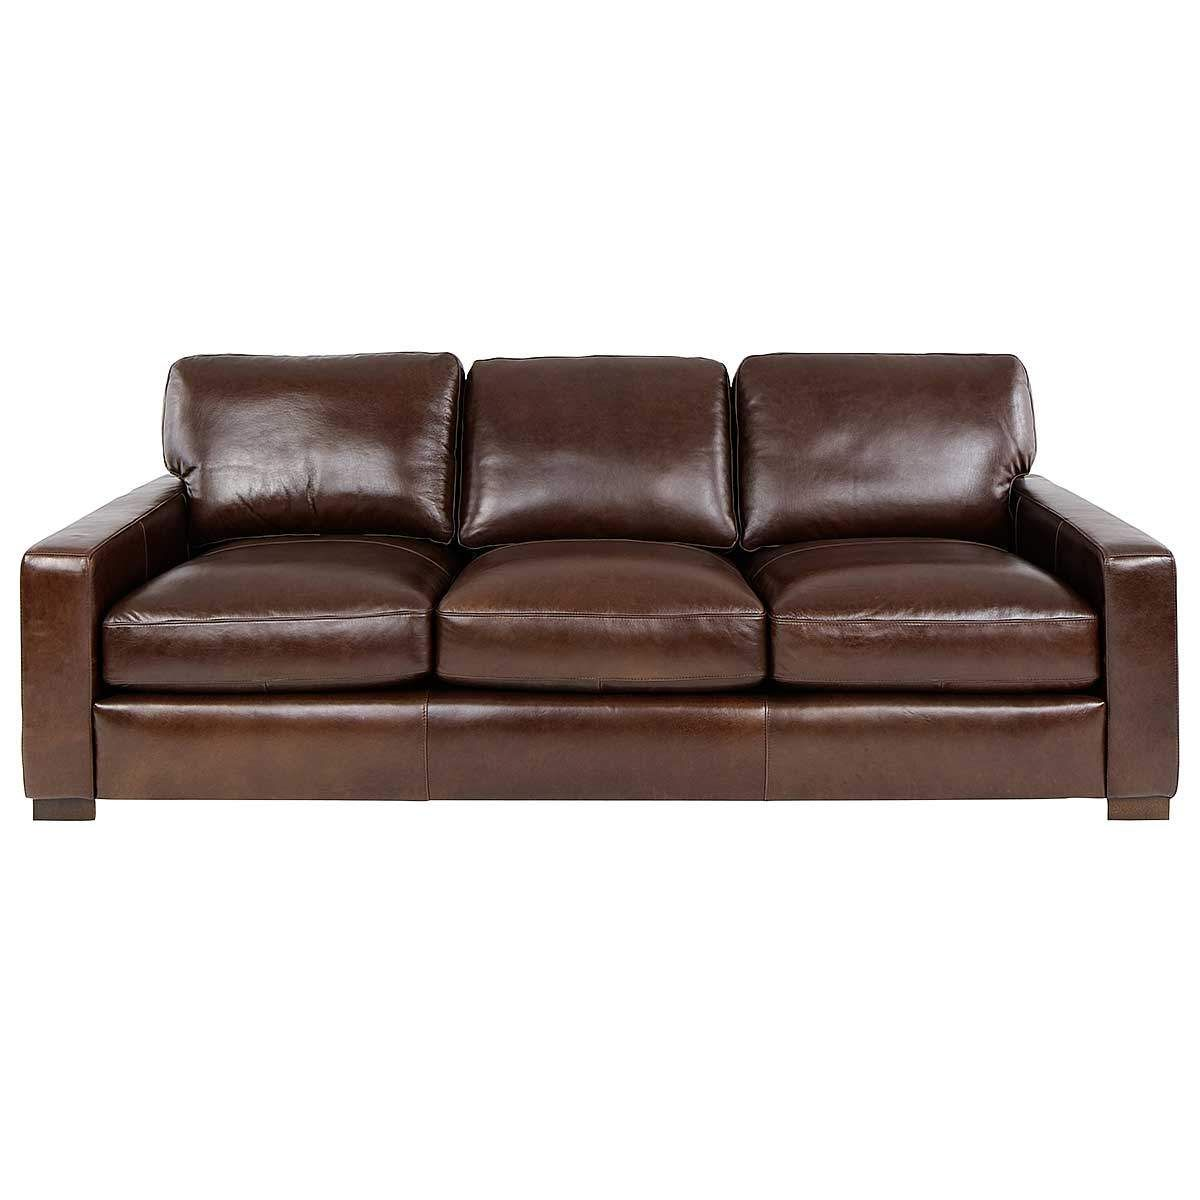 Fairview Leather Sofa In Chestnut Jerome S Furniture 94x42dx35h Leather Sofa Sofa Fabric Sofa